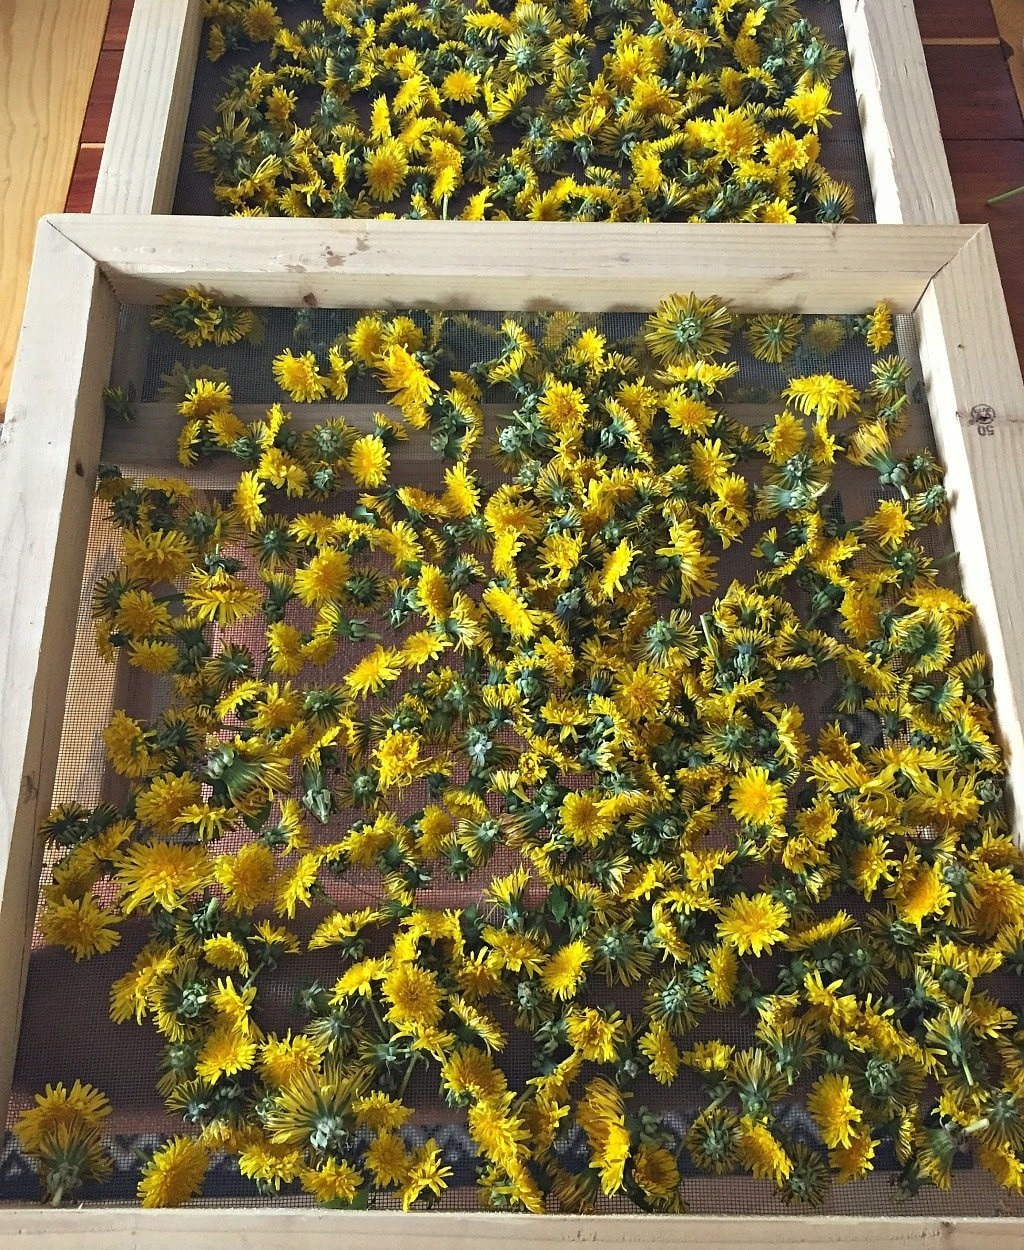 foraged dandelions drying on a screen